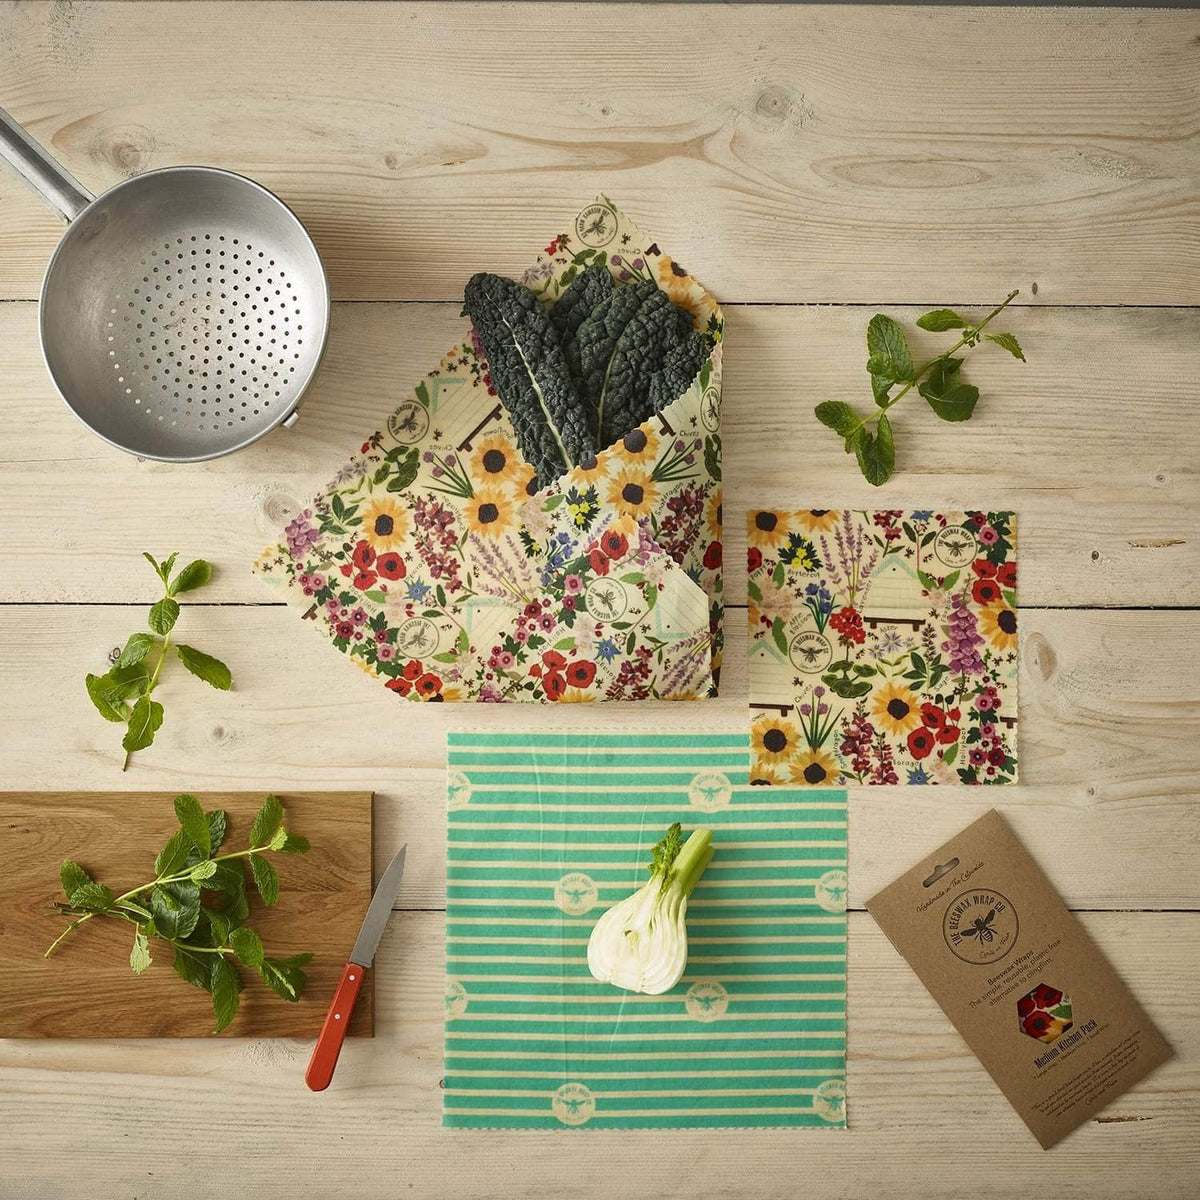 *New* Beeswax wraps - medium kitchen pack Floral